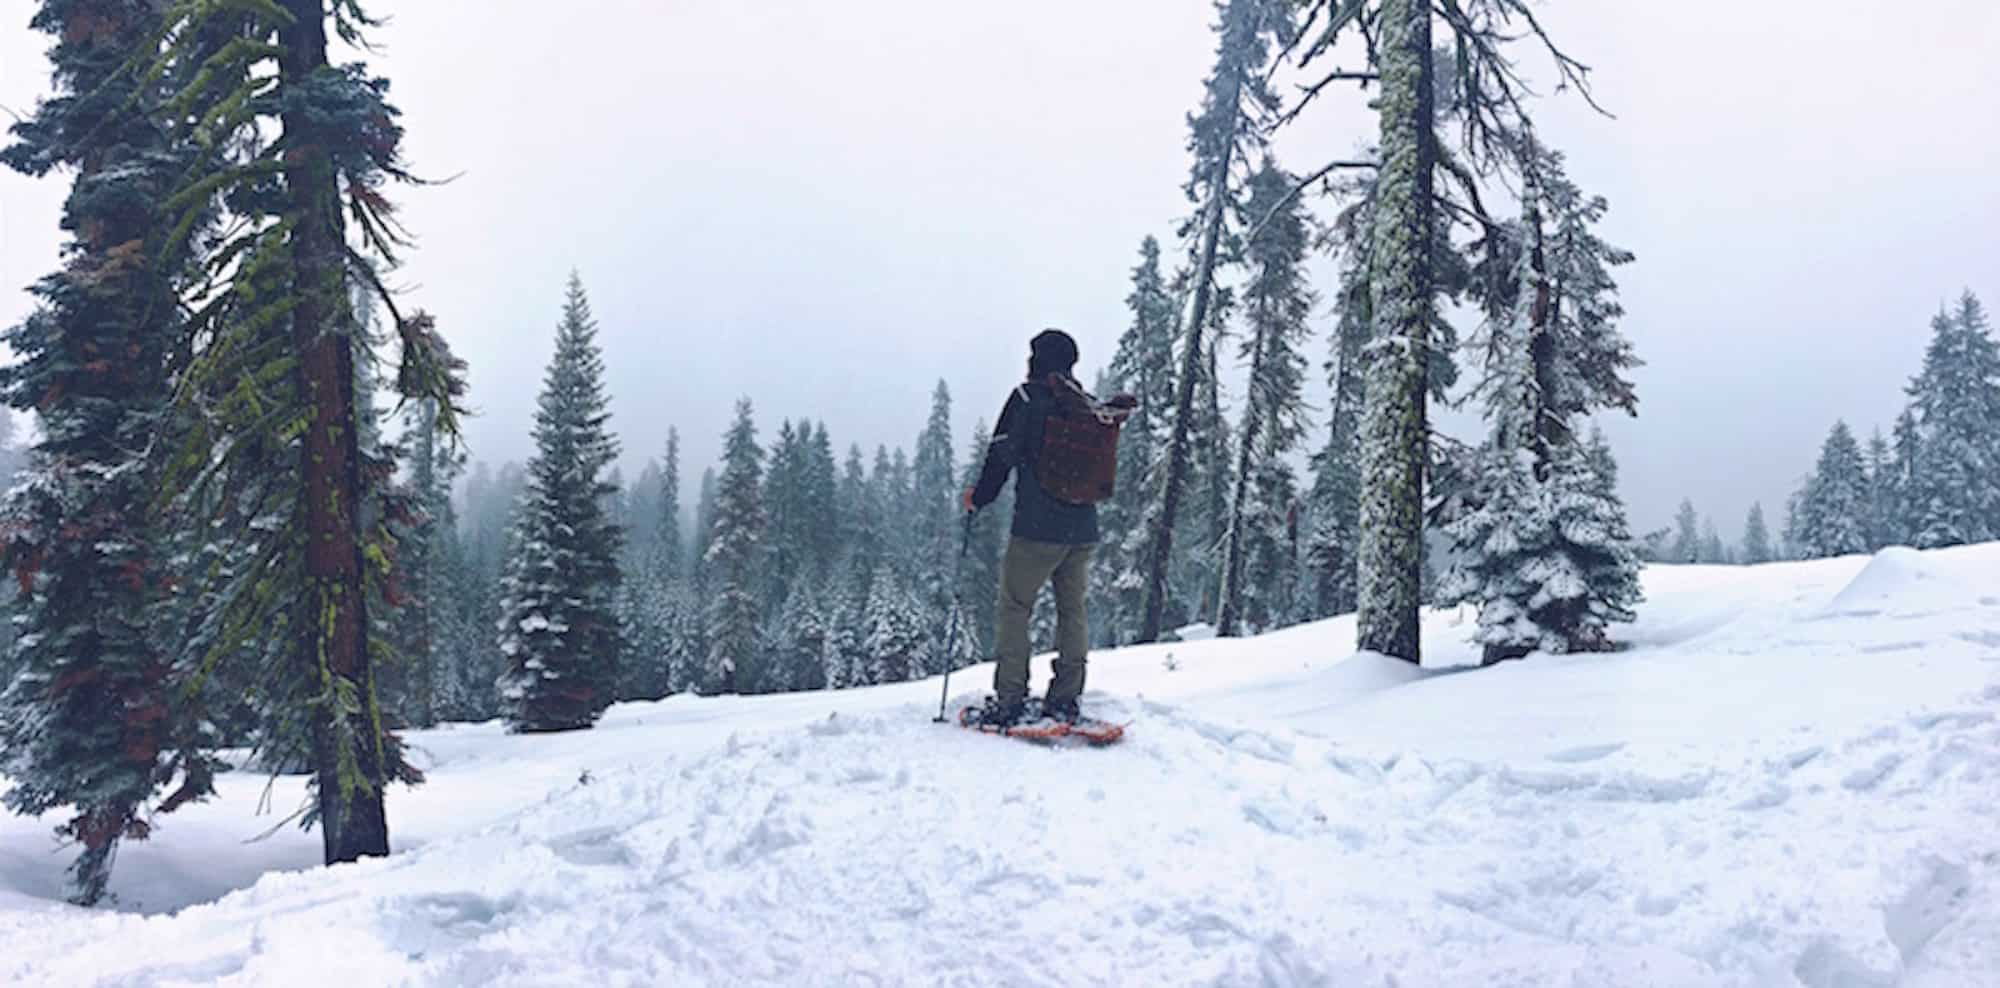 Skier in the woods